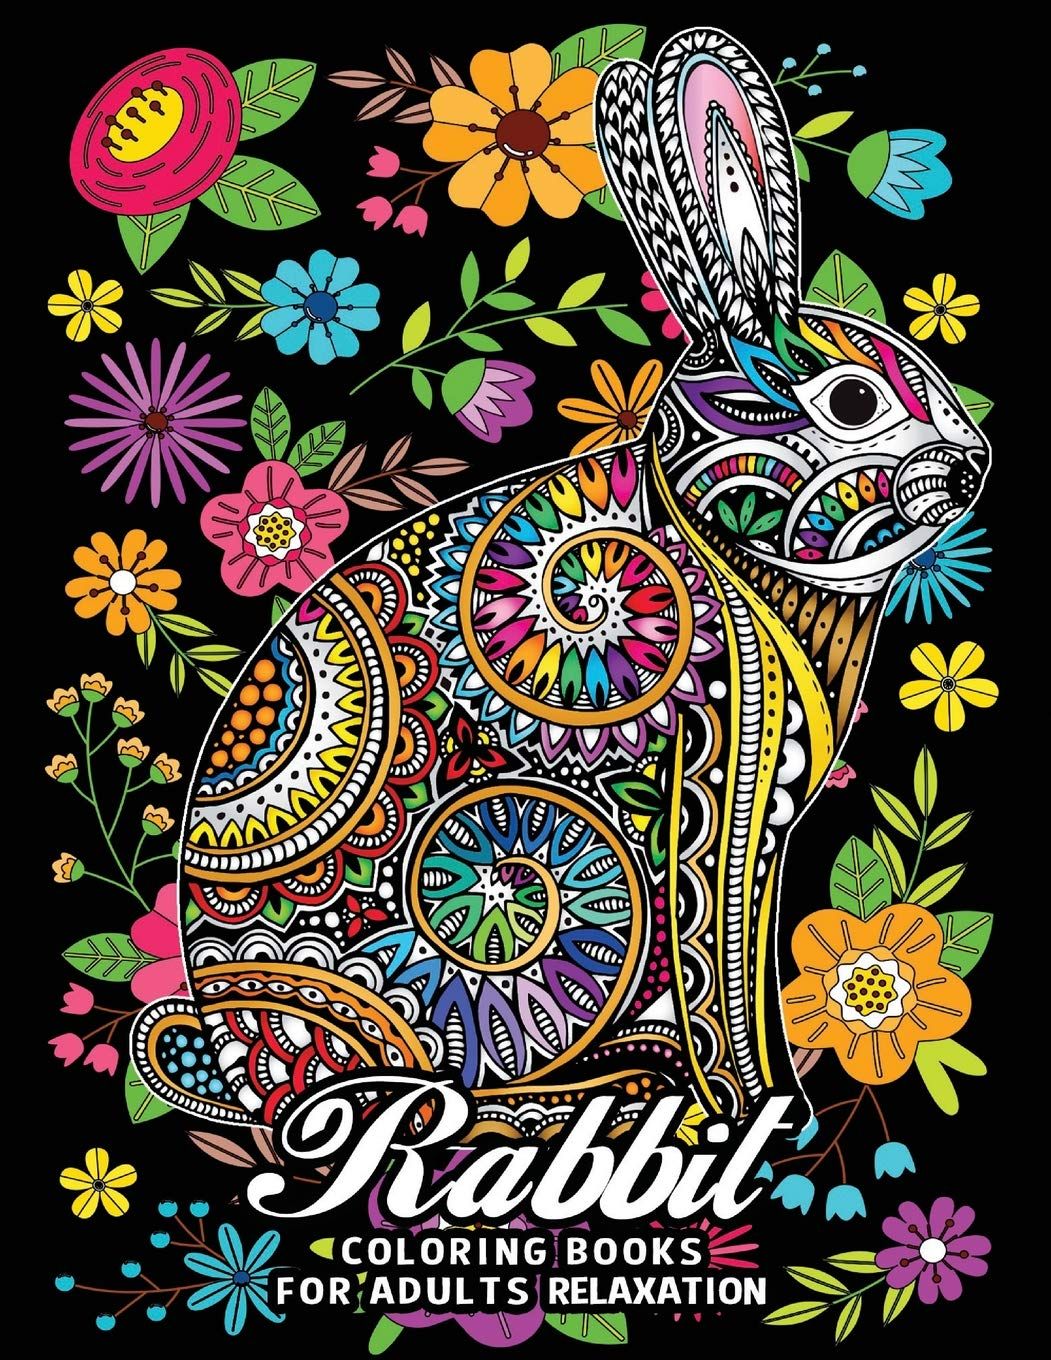 Amazon.com: Rabbit Coloring Books for Adults Relaxation: Fun ...